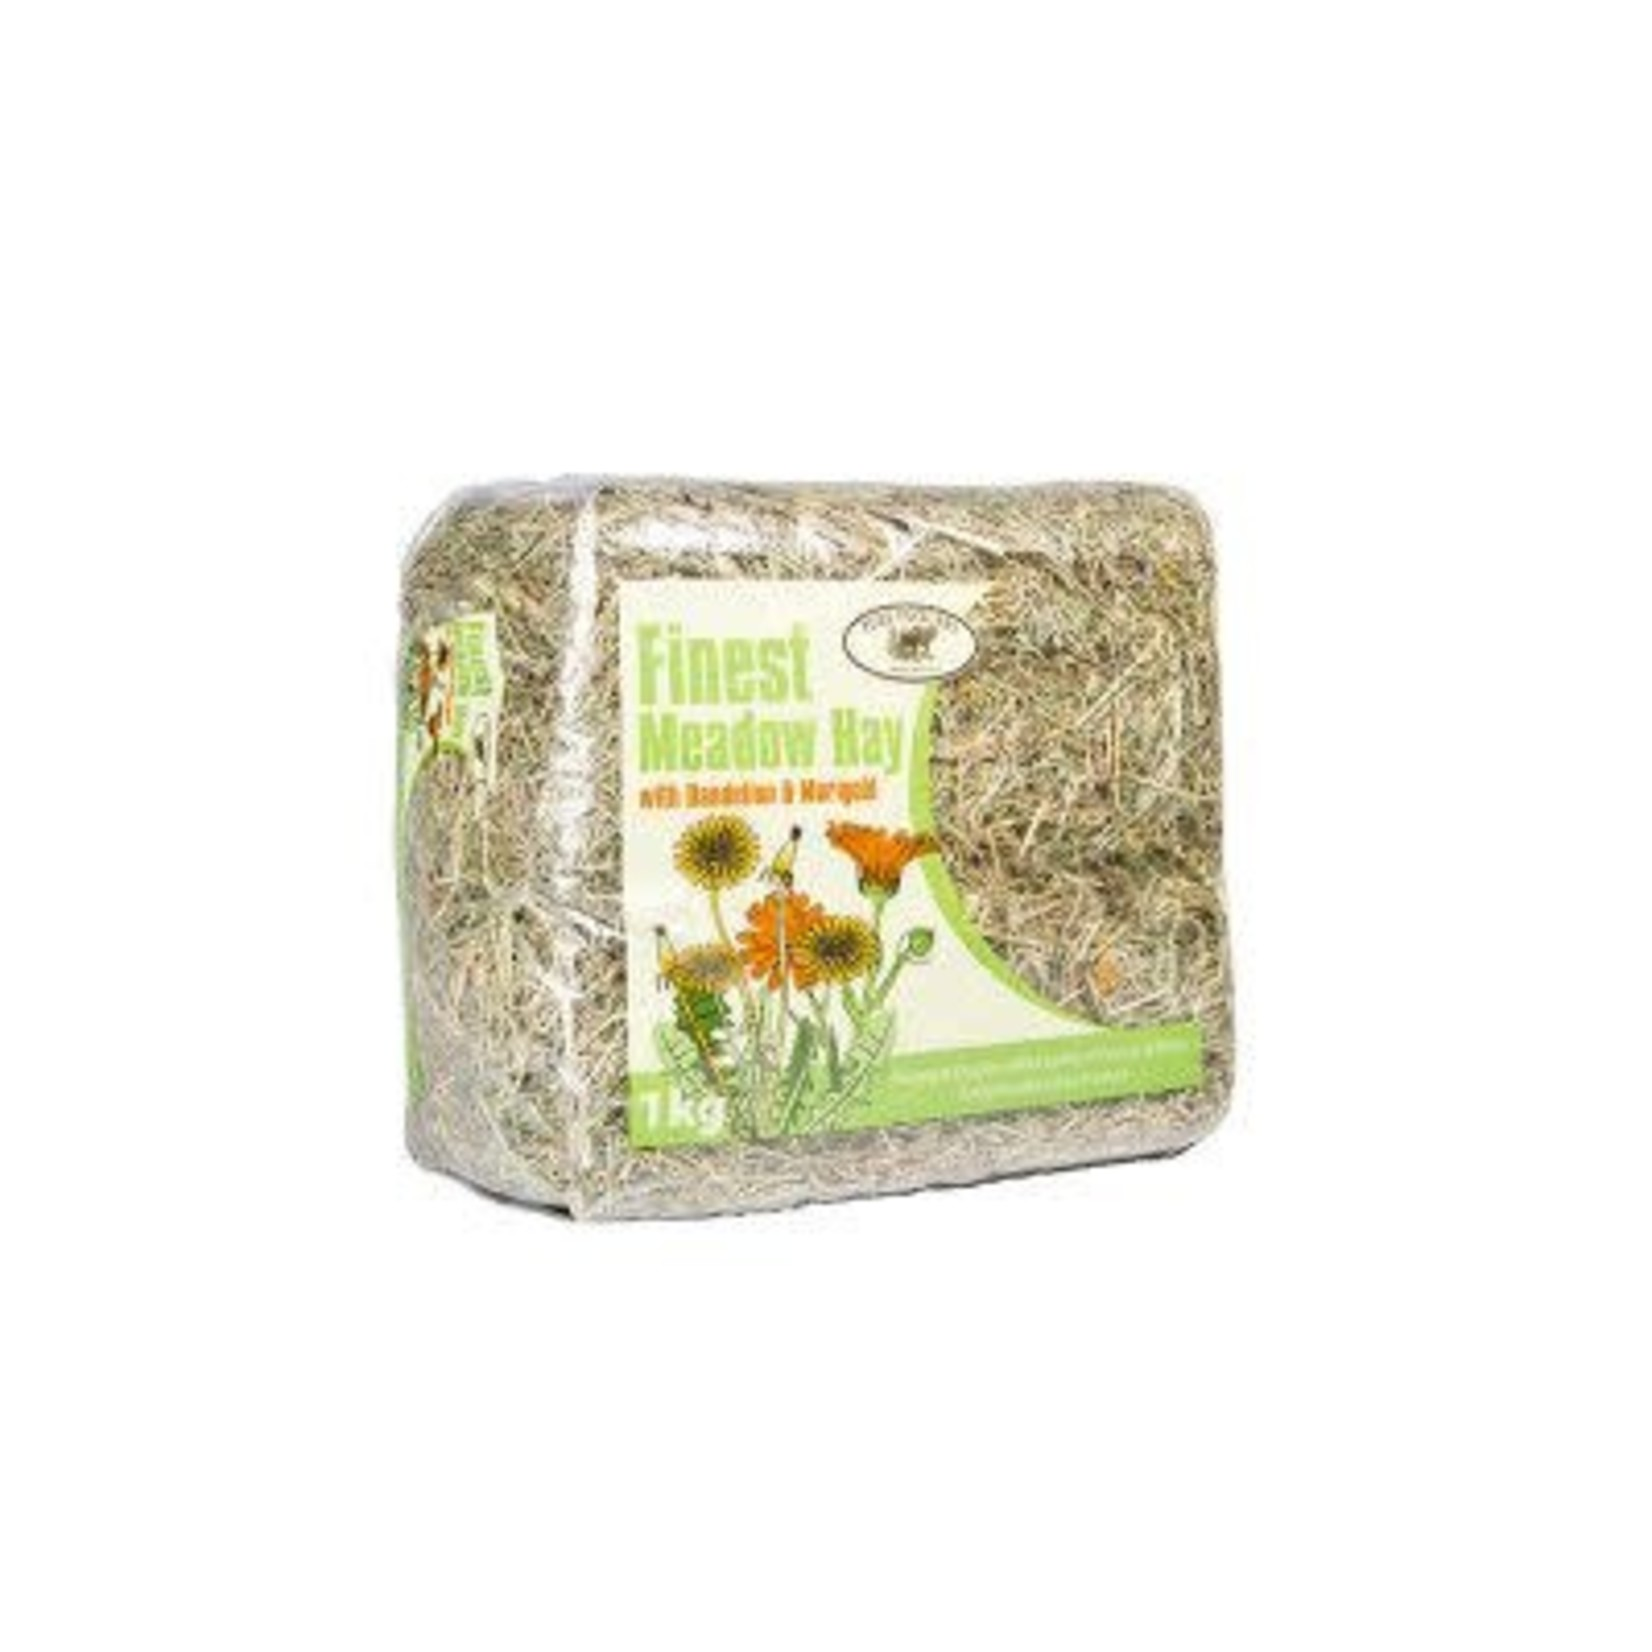 Pure Pastures Finest Meadow Hay with Dandelion & Marigold 1kg